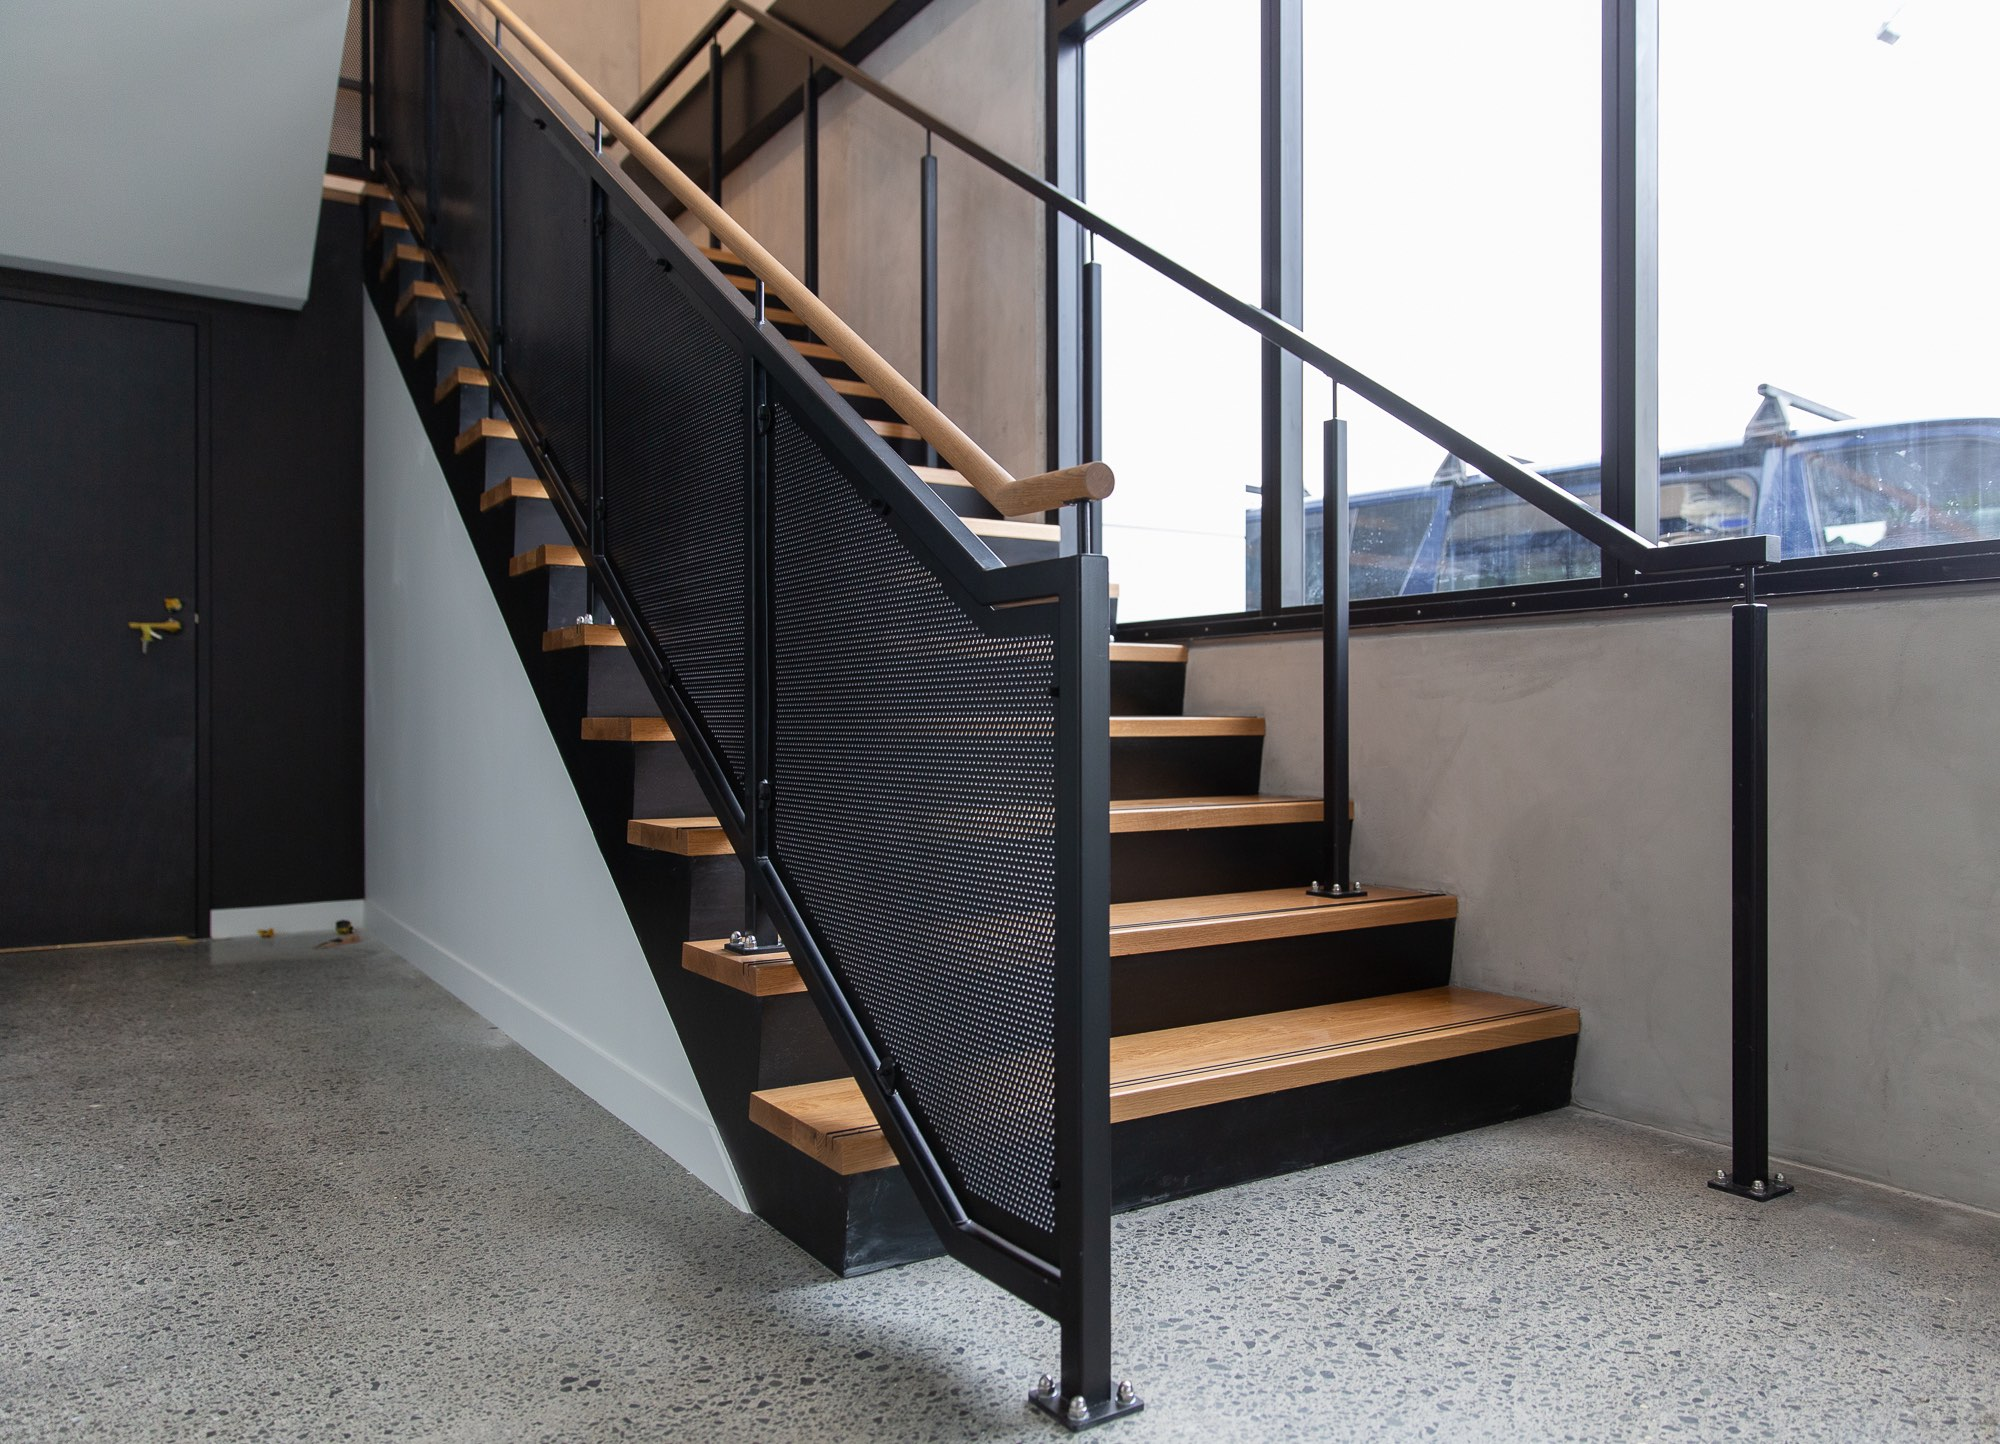 Commercial staircase design by Stairworks in Auckland with metal balustrade, oak treads and handrail